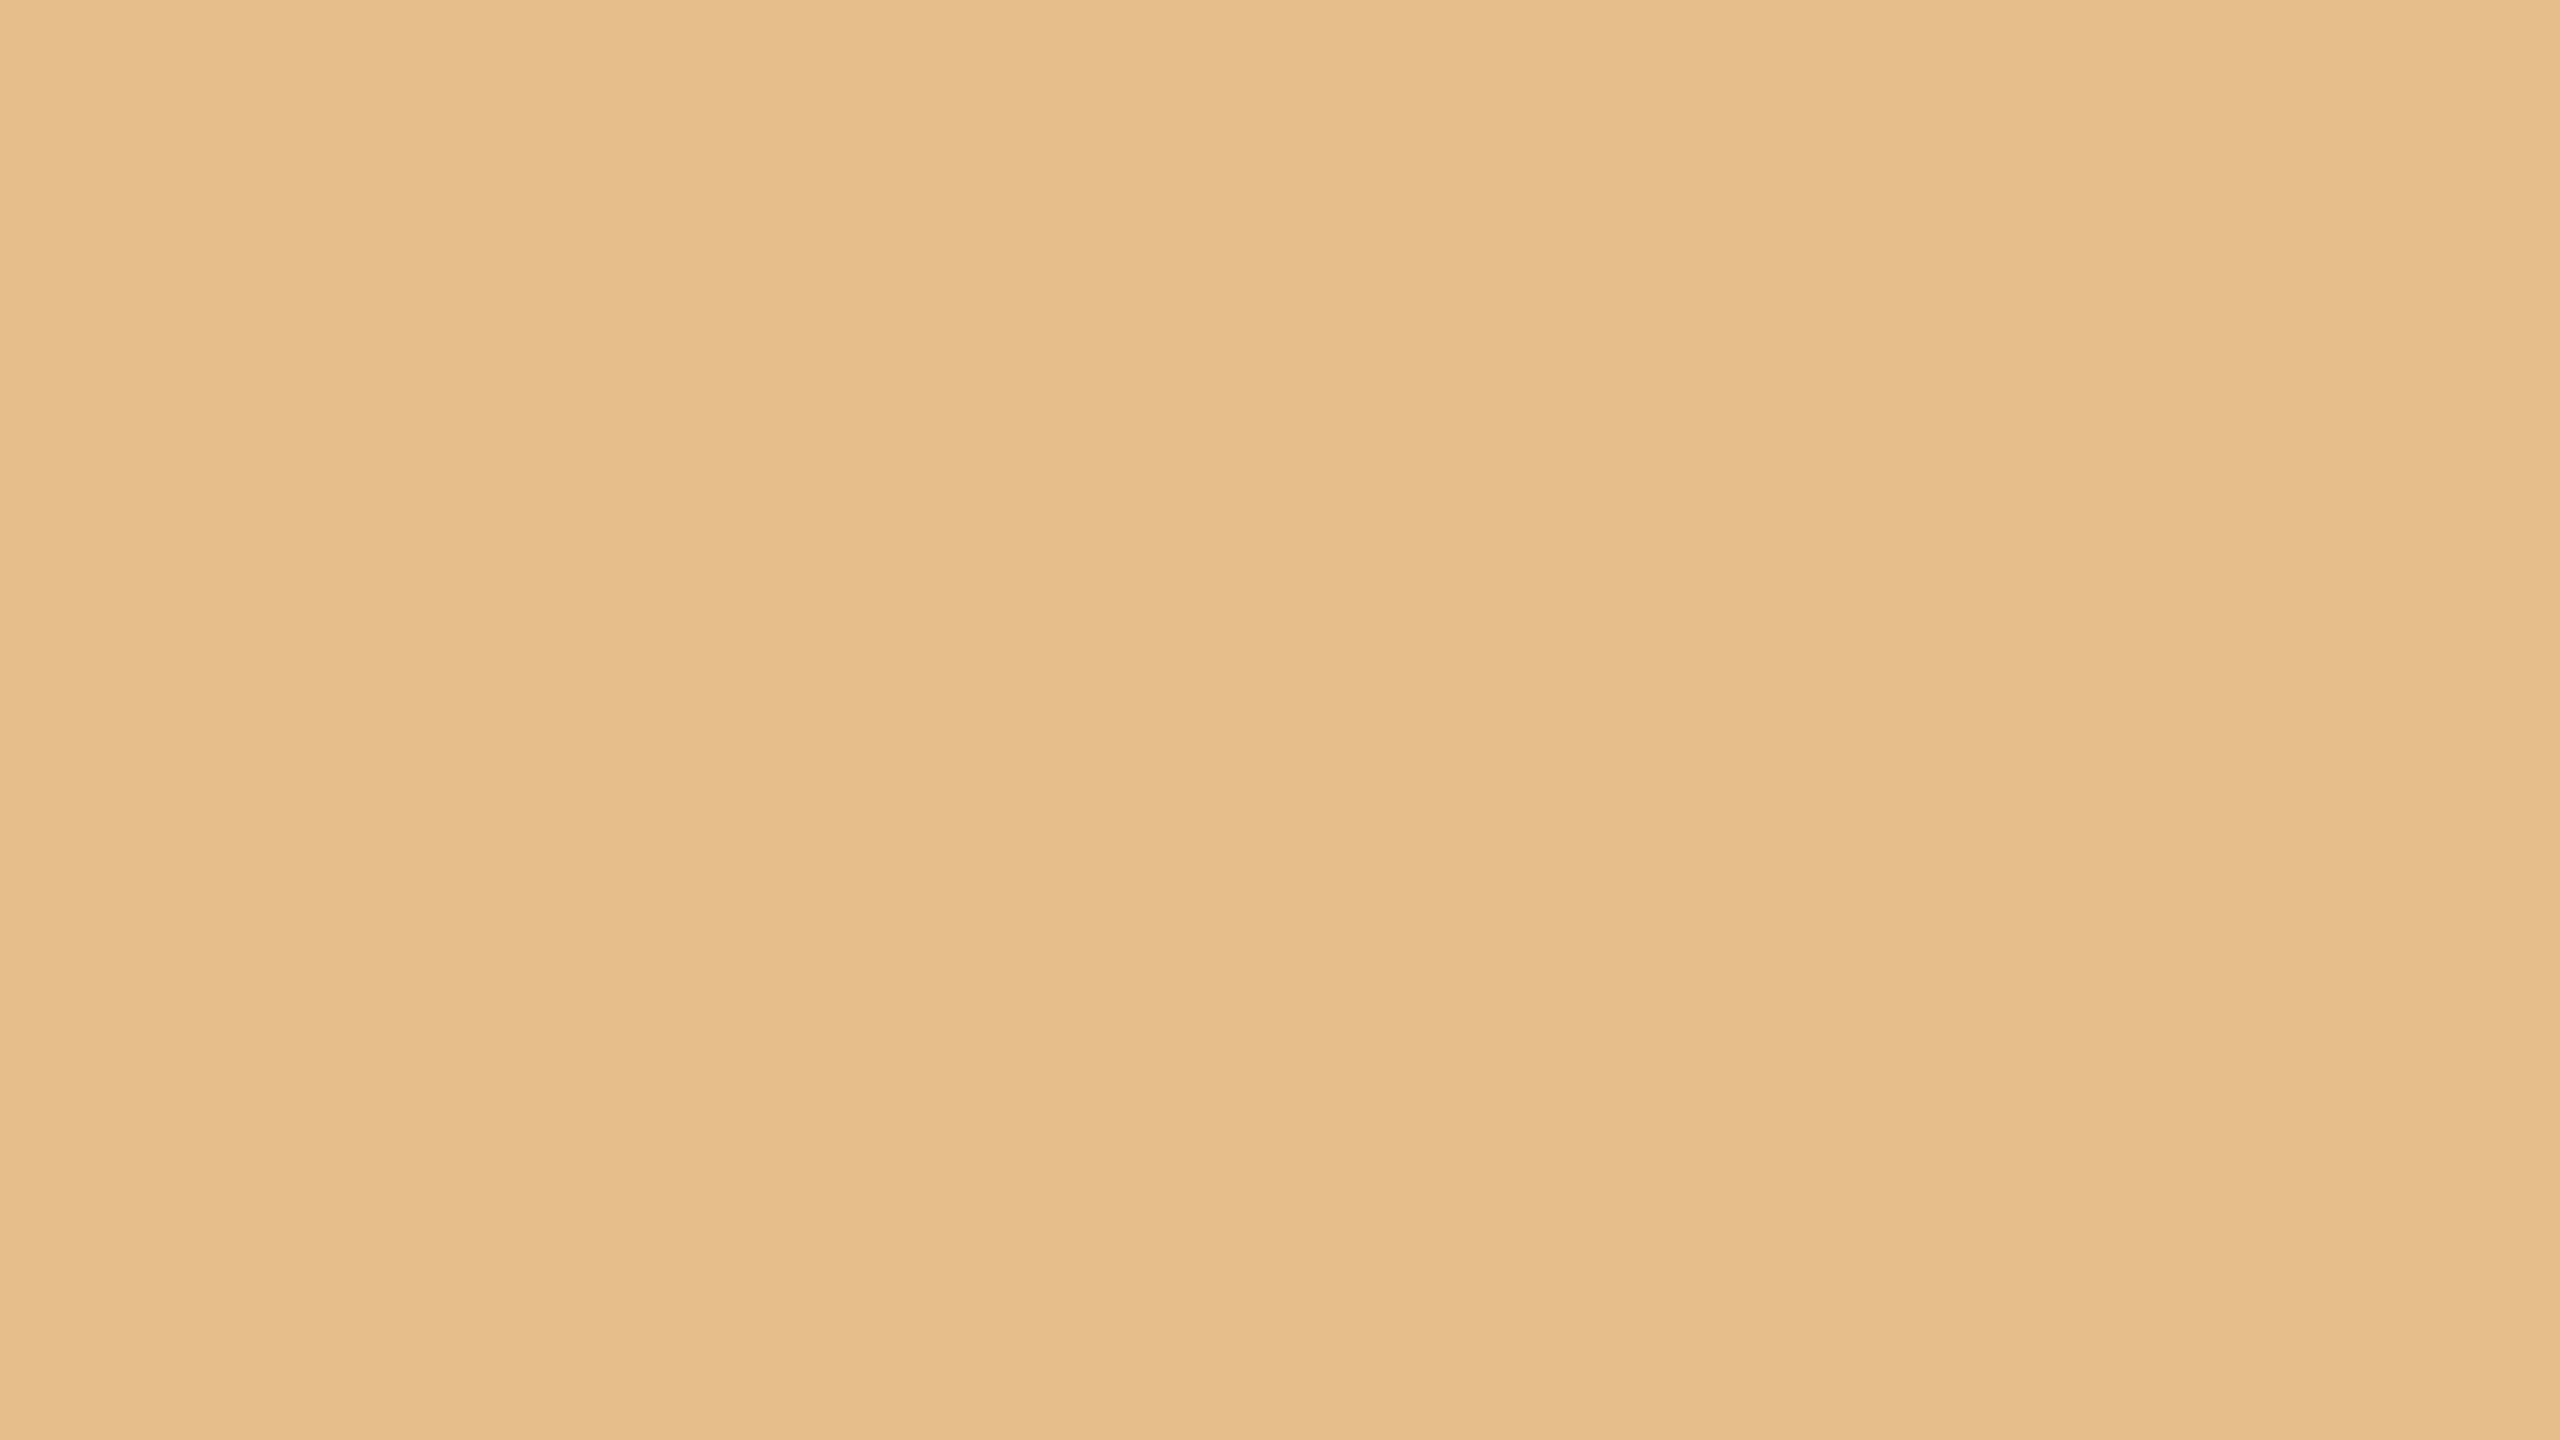 2560x1440 Pale Gold Solid Color Background